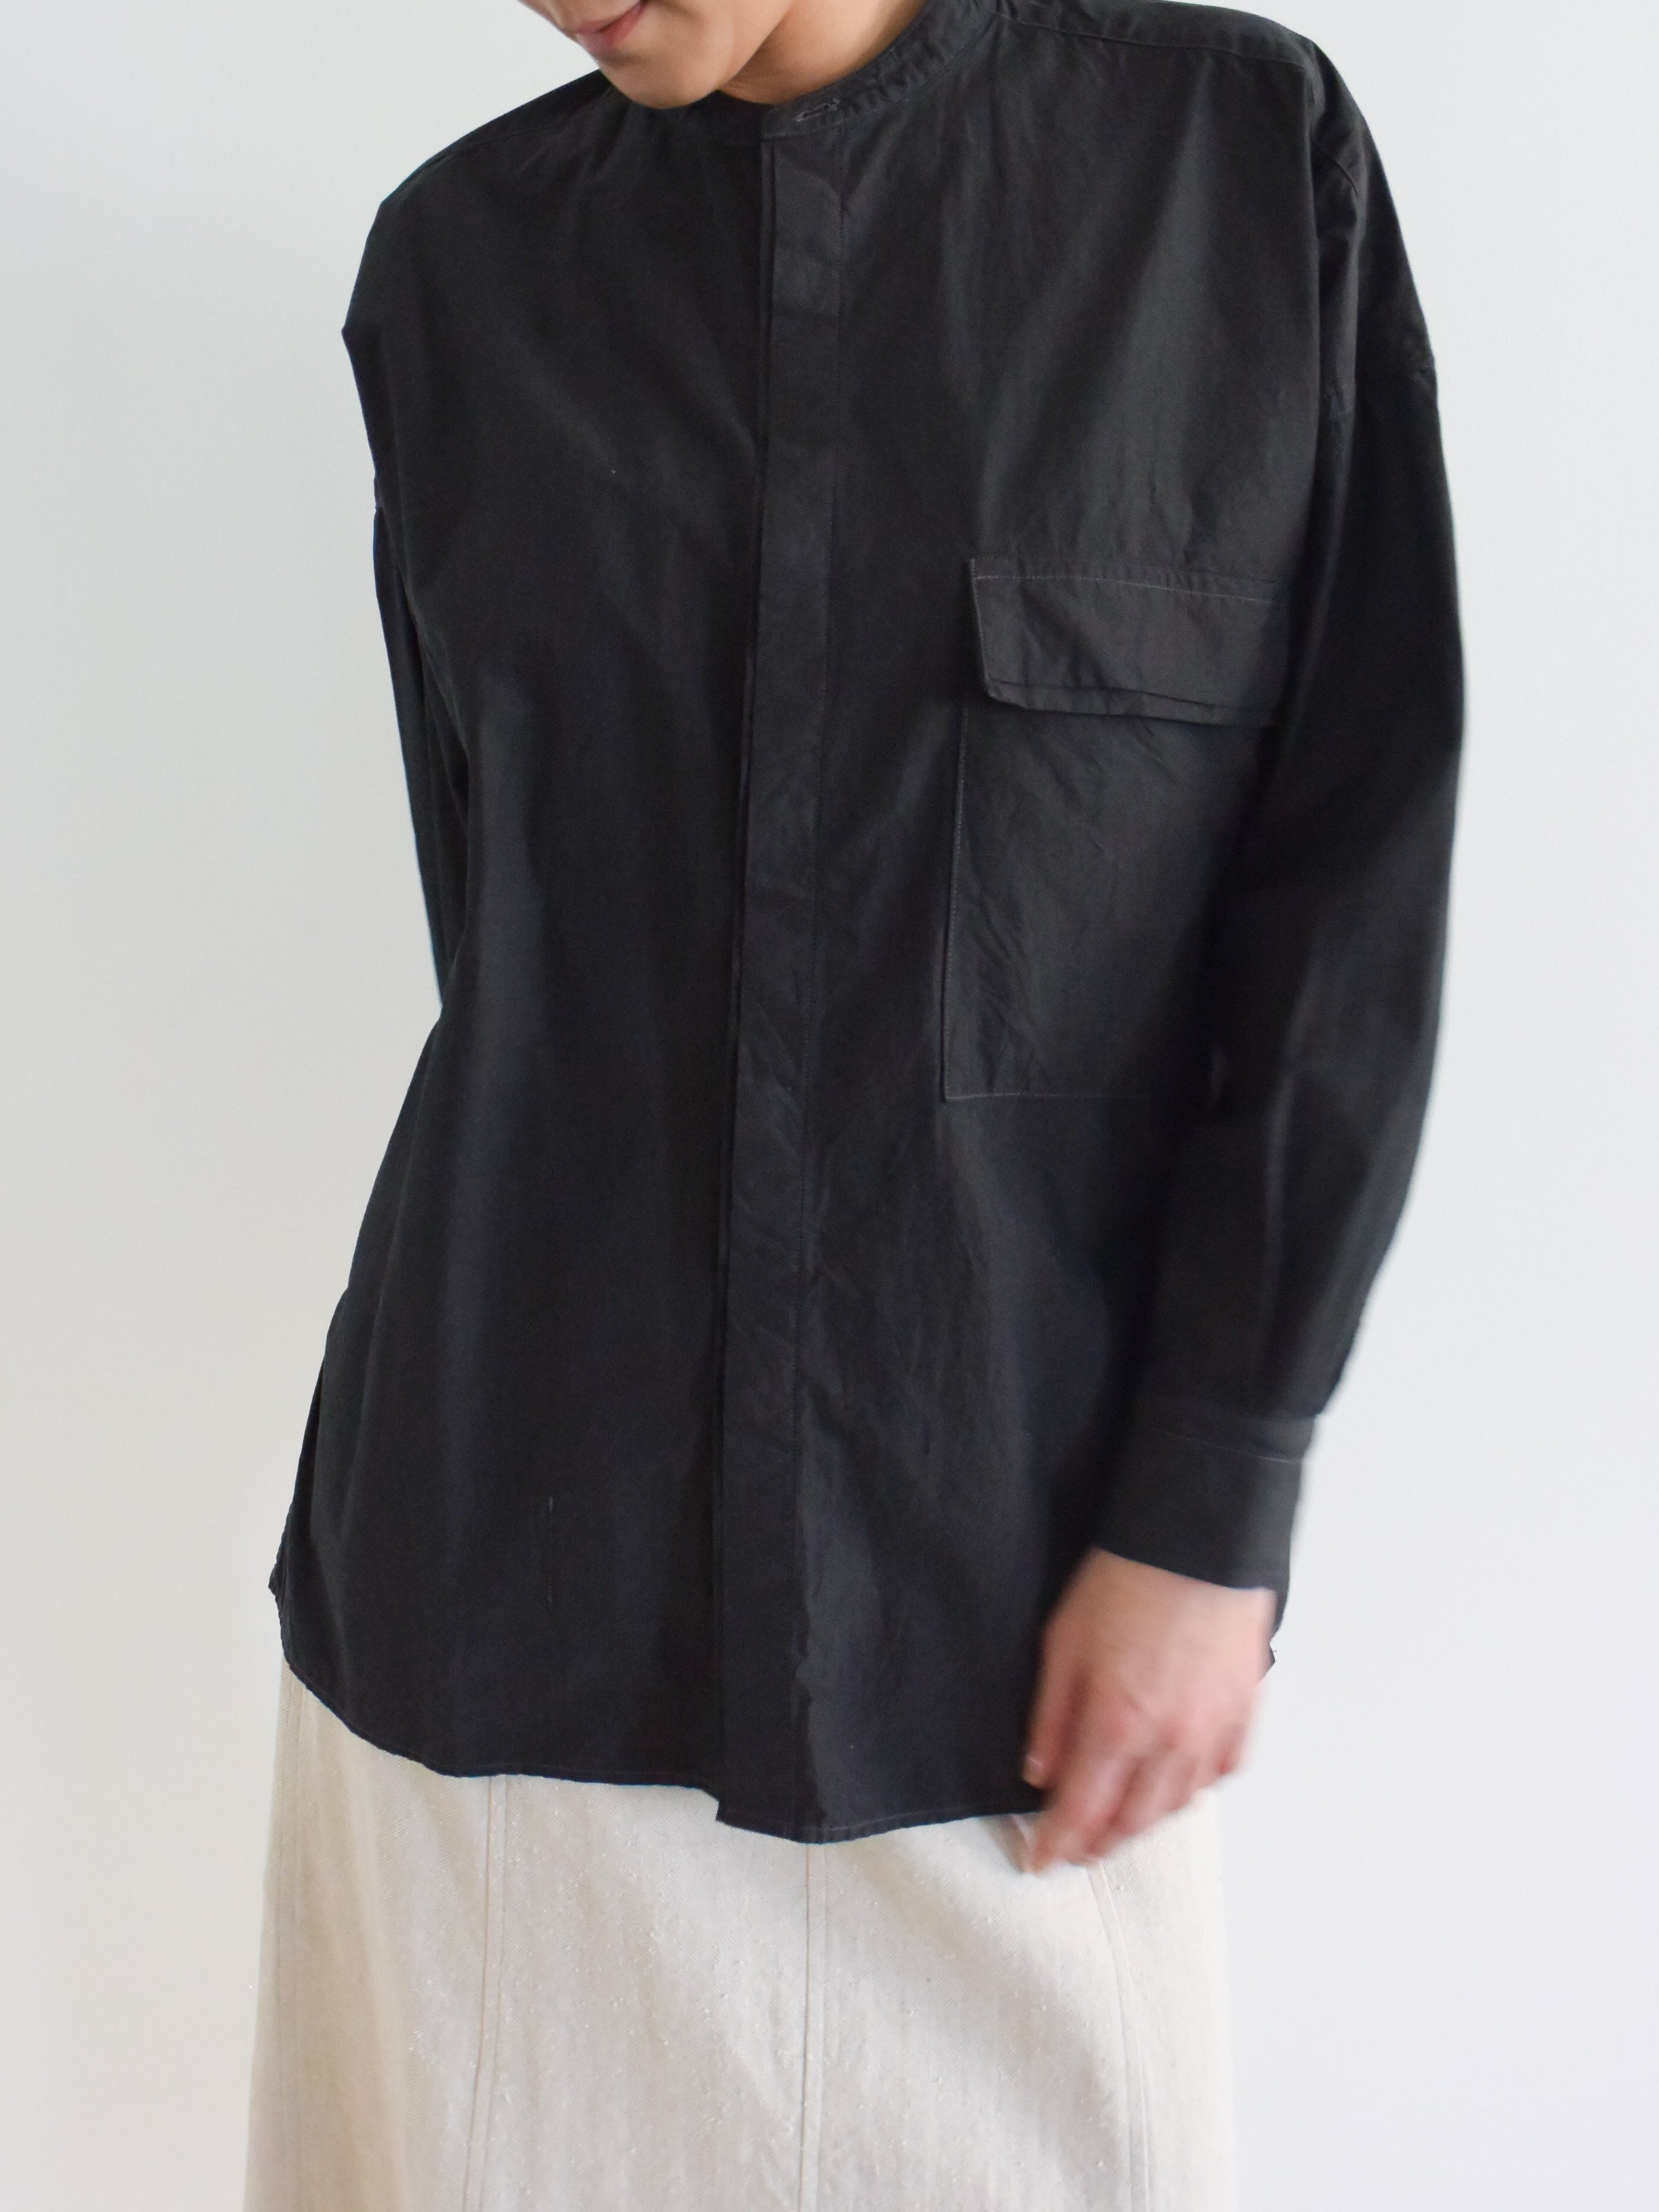 Namu Shop - Kaptain Sunshine Fly Front Band Collar Shirt - Charcoal